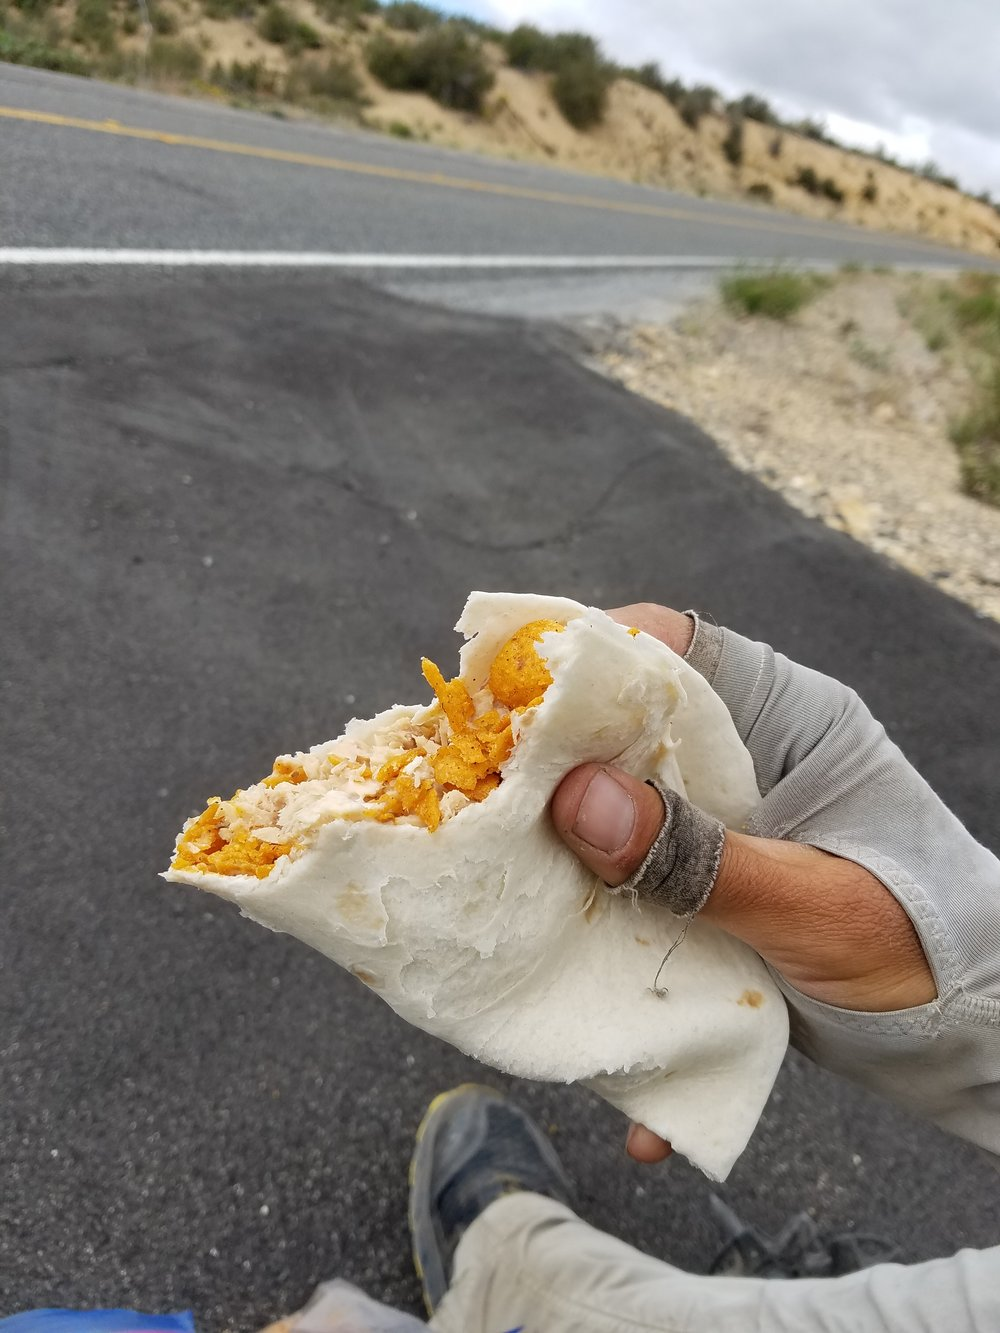 Mowing down ghetto fish tacos on the side of the road like a degenerate.